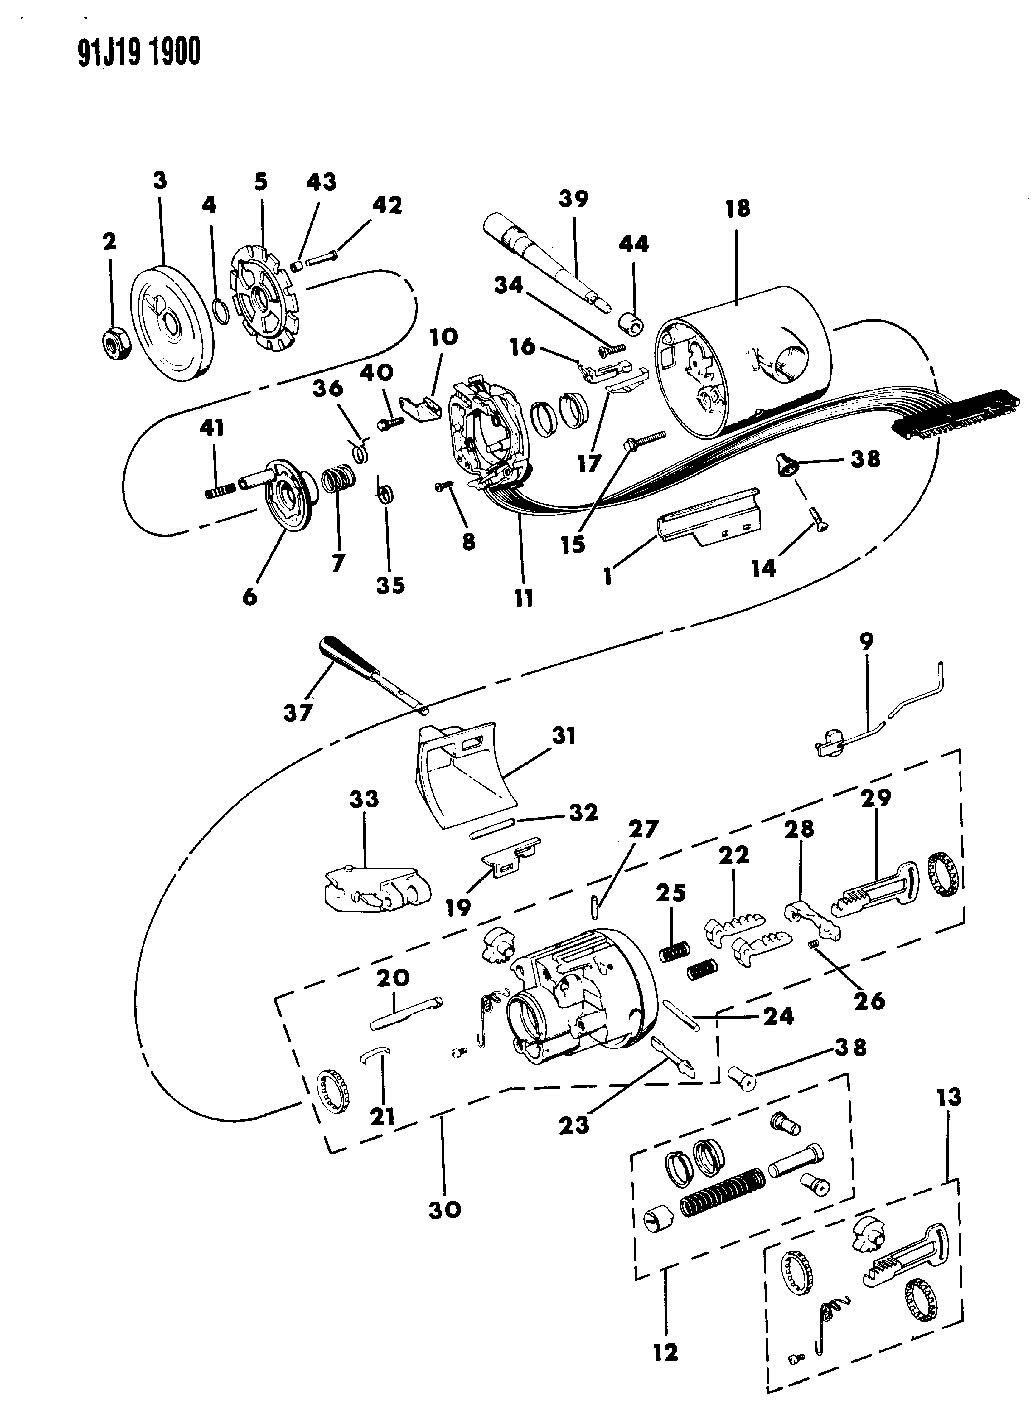 Wiring Diagrams : 1988 Bayliner Capri Fuse Box Wiring